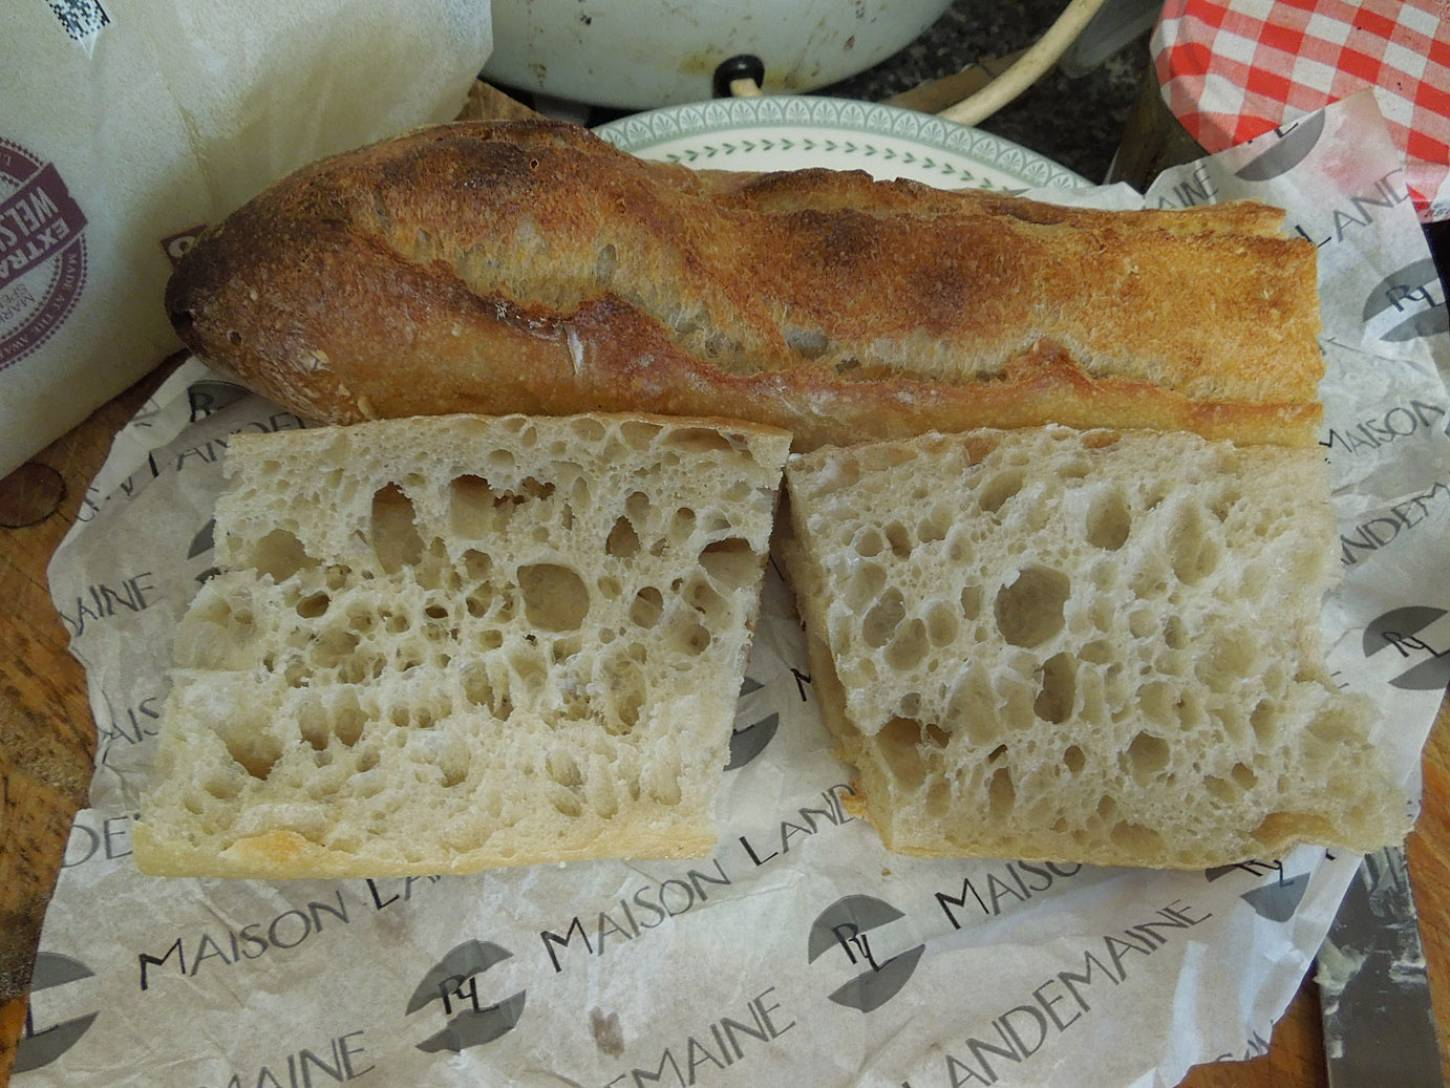 bakers and baguettes of Paris <a href='https://www.google.co.uk/webhp?sourceid=chrome-instant&rlz=1C1CHMG_en-GBGB291&ion=1&espv=2&es_th=1&ie=UTF-8#safe=off&q=Maison+Landemaine+Jules+Joffrin+Paris,+France&stick=H4sIAAAAAAAAAGOovnz8BQMDQwcHm5SIoaGhsbmRgaWZoamxhYGxoYGZobESVlEvwdzEzOL8PIWcxLyUVCA7LzWItSCxKLM4ShxDRgEscYhRxaDCxDzVzCzVMM3ALNUoydwgzQooZJBkYZRsbGZhkWxpYmaQ7_BX53DOWr_bG3bUPv-ZrPZgpv8MANNiTBGlAAAA&rlst=n' target=_blank>Maison Landemaine, Jules Joffrin</a>, quite nice rustic version - 2:08pm&nbsp;4<sup>th</sup>&nbsp;Jun.&nbsp;'15